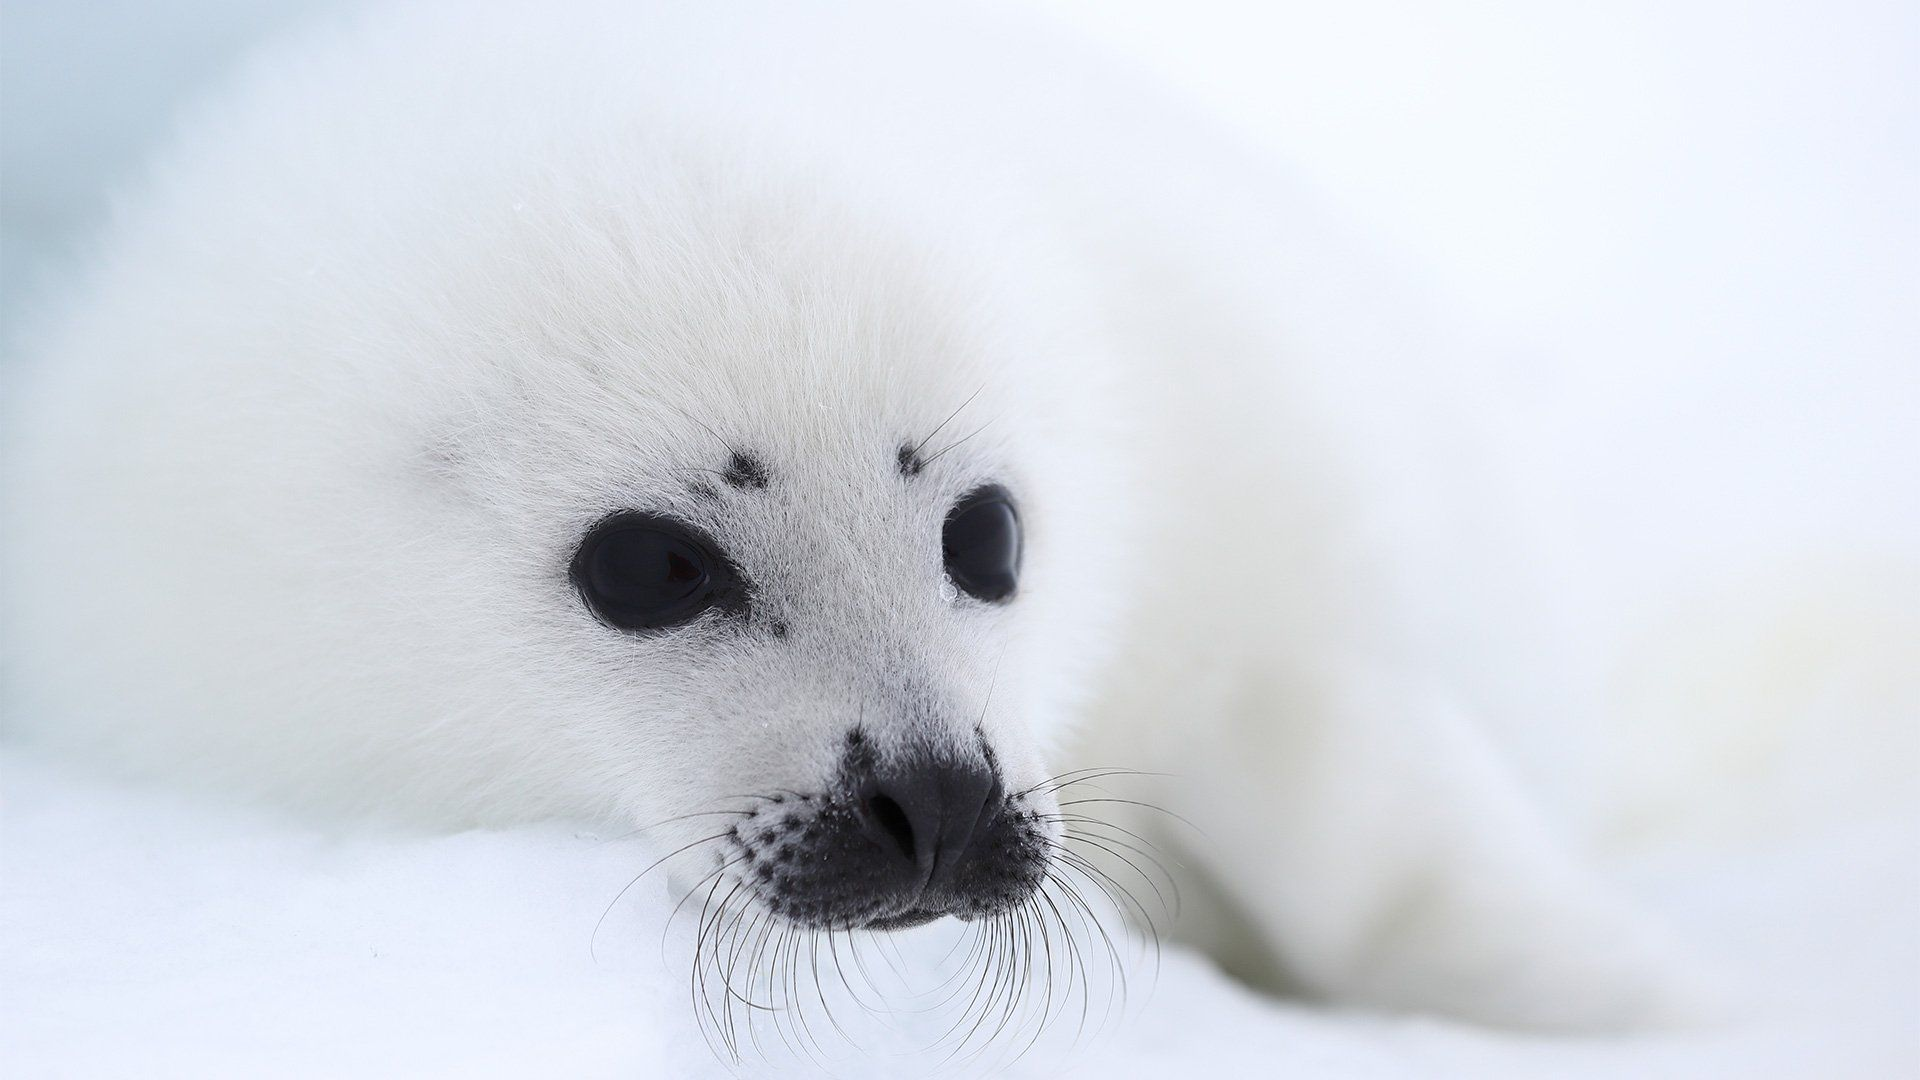 Seal cub sitting against a snowy background.